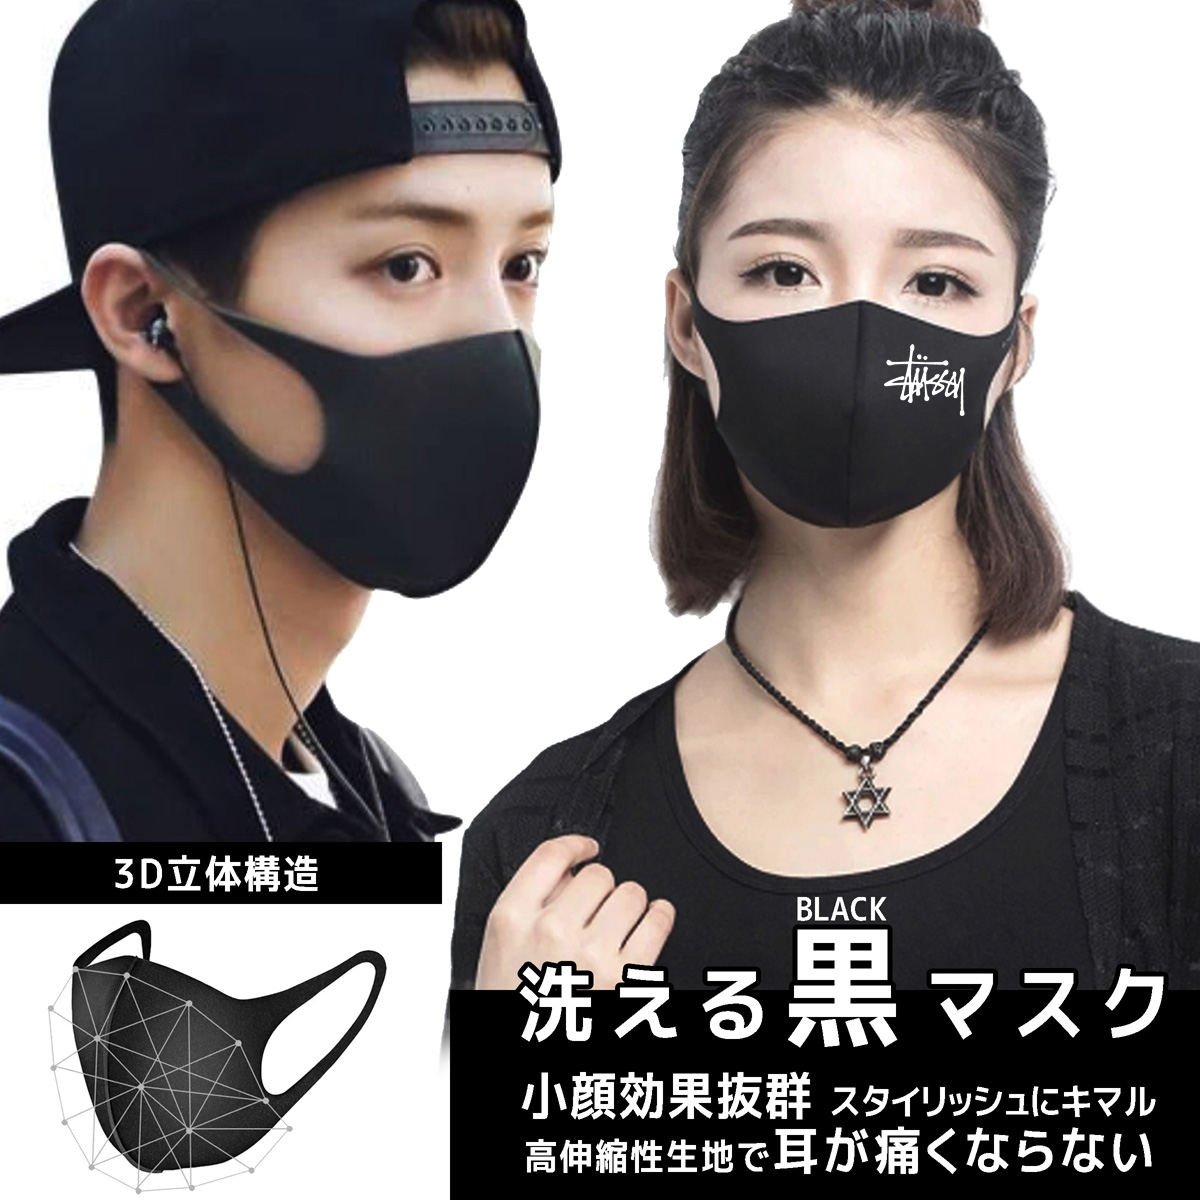 Stussy 3D Face Mask Reusable Masks Adults Face Cover Cloth Breathing Mouth Coverings